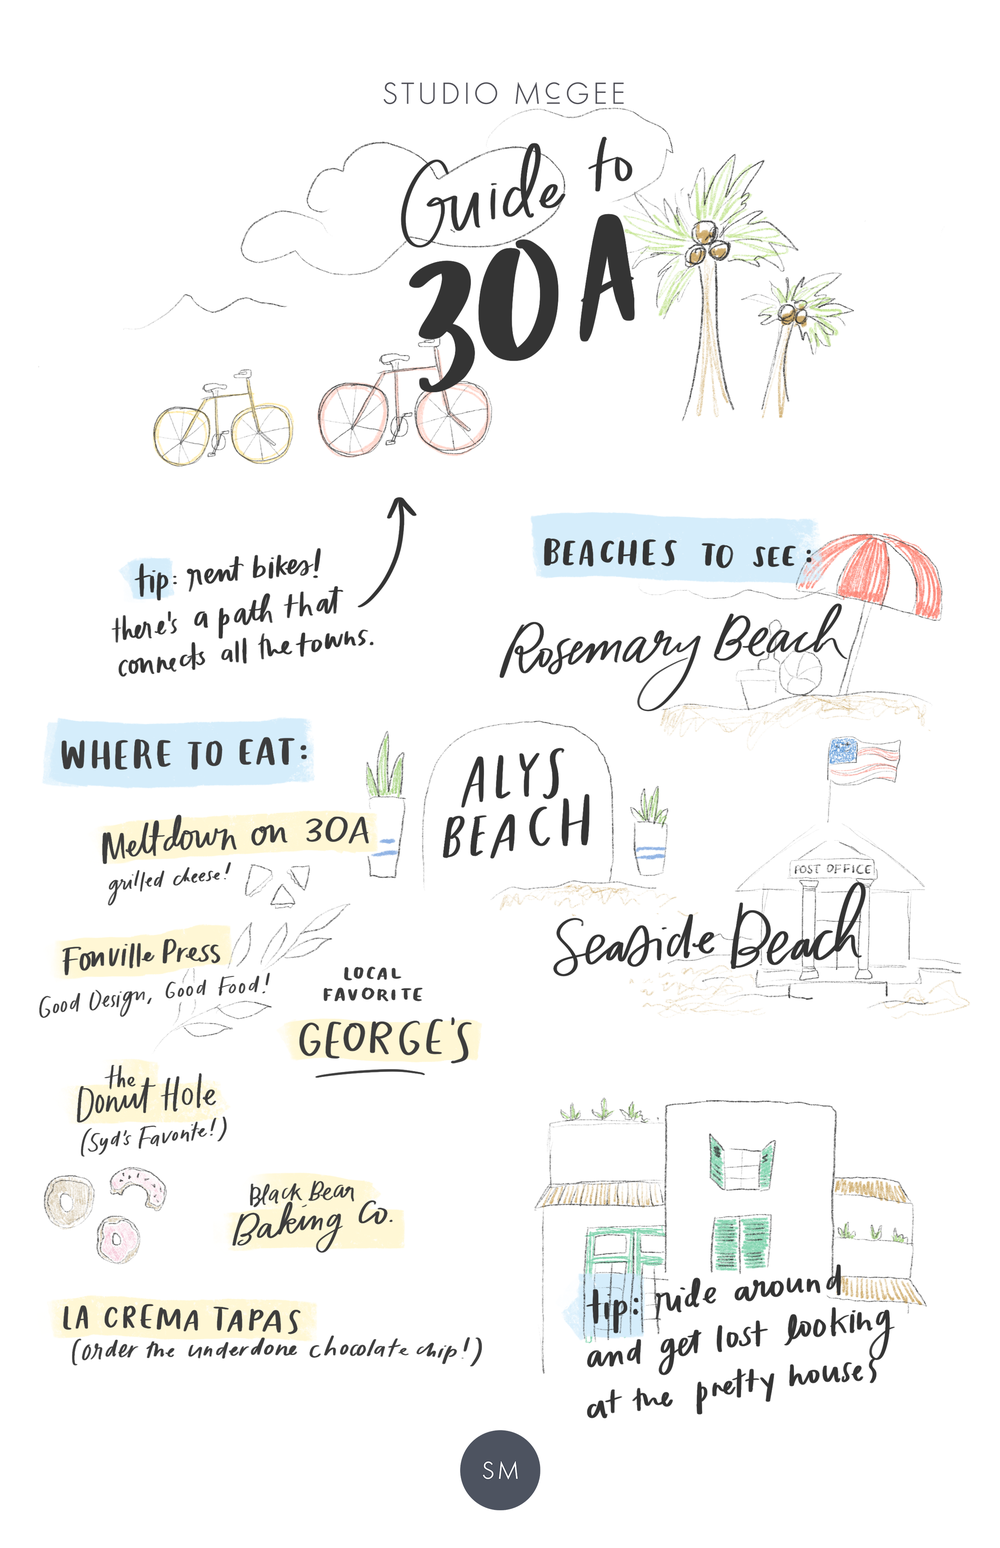 Our Guide to 30A